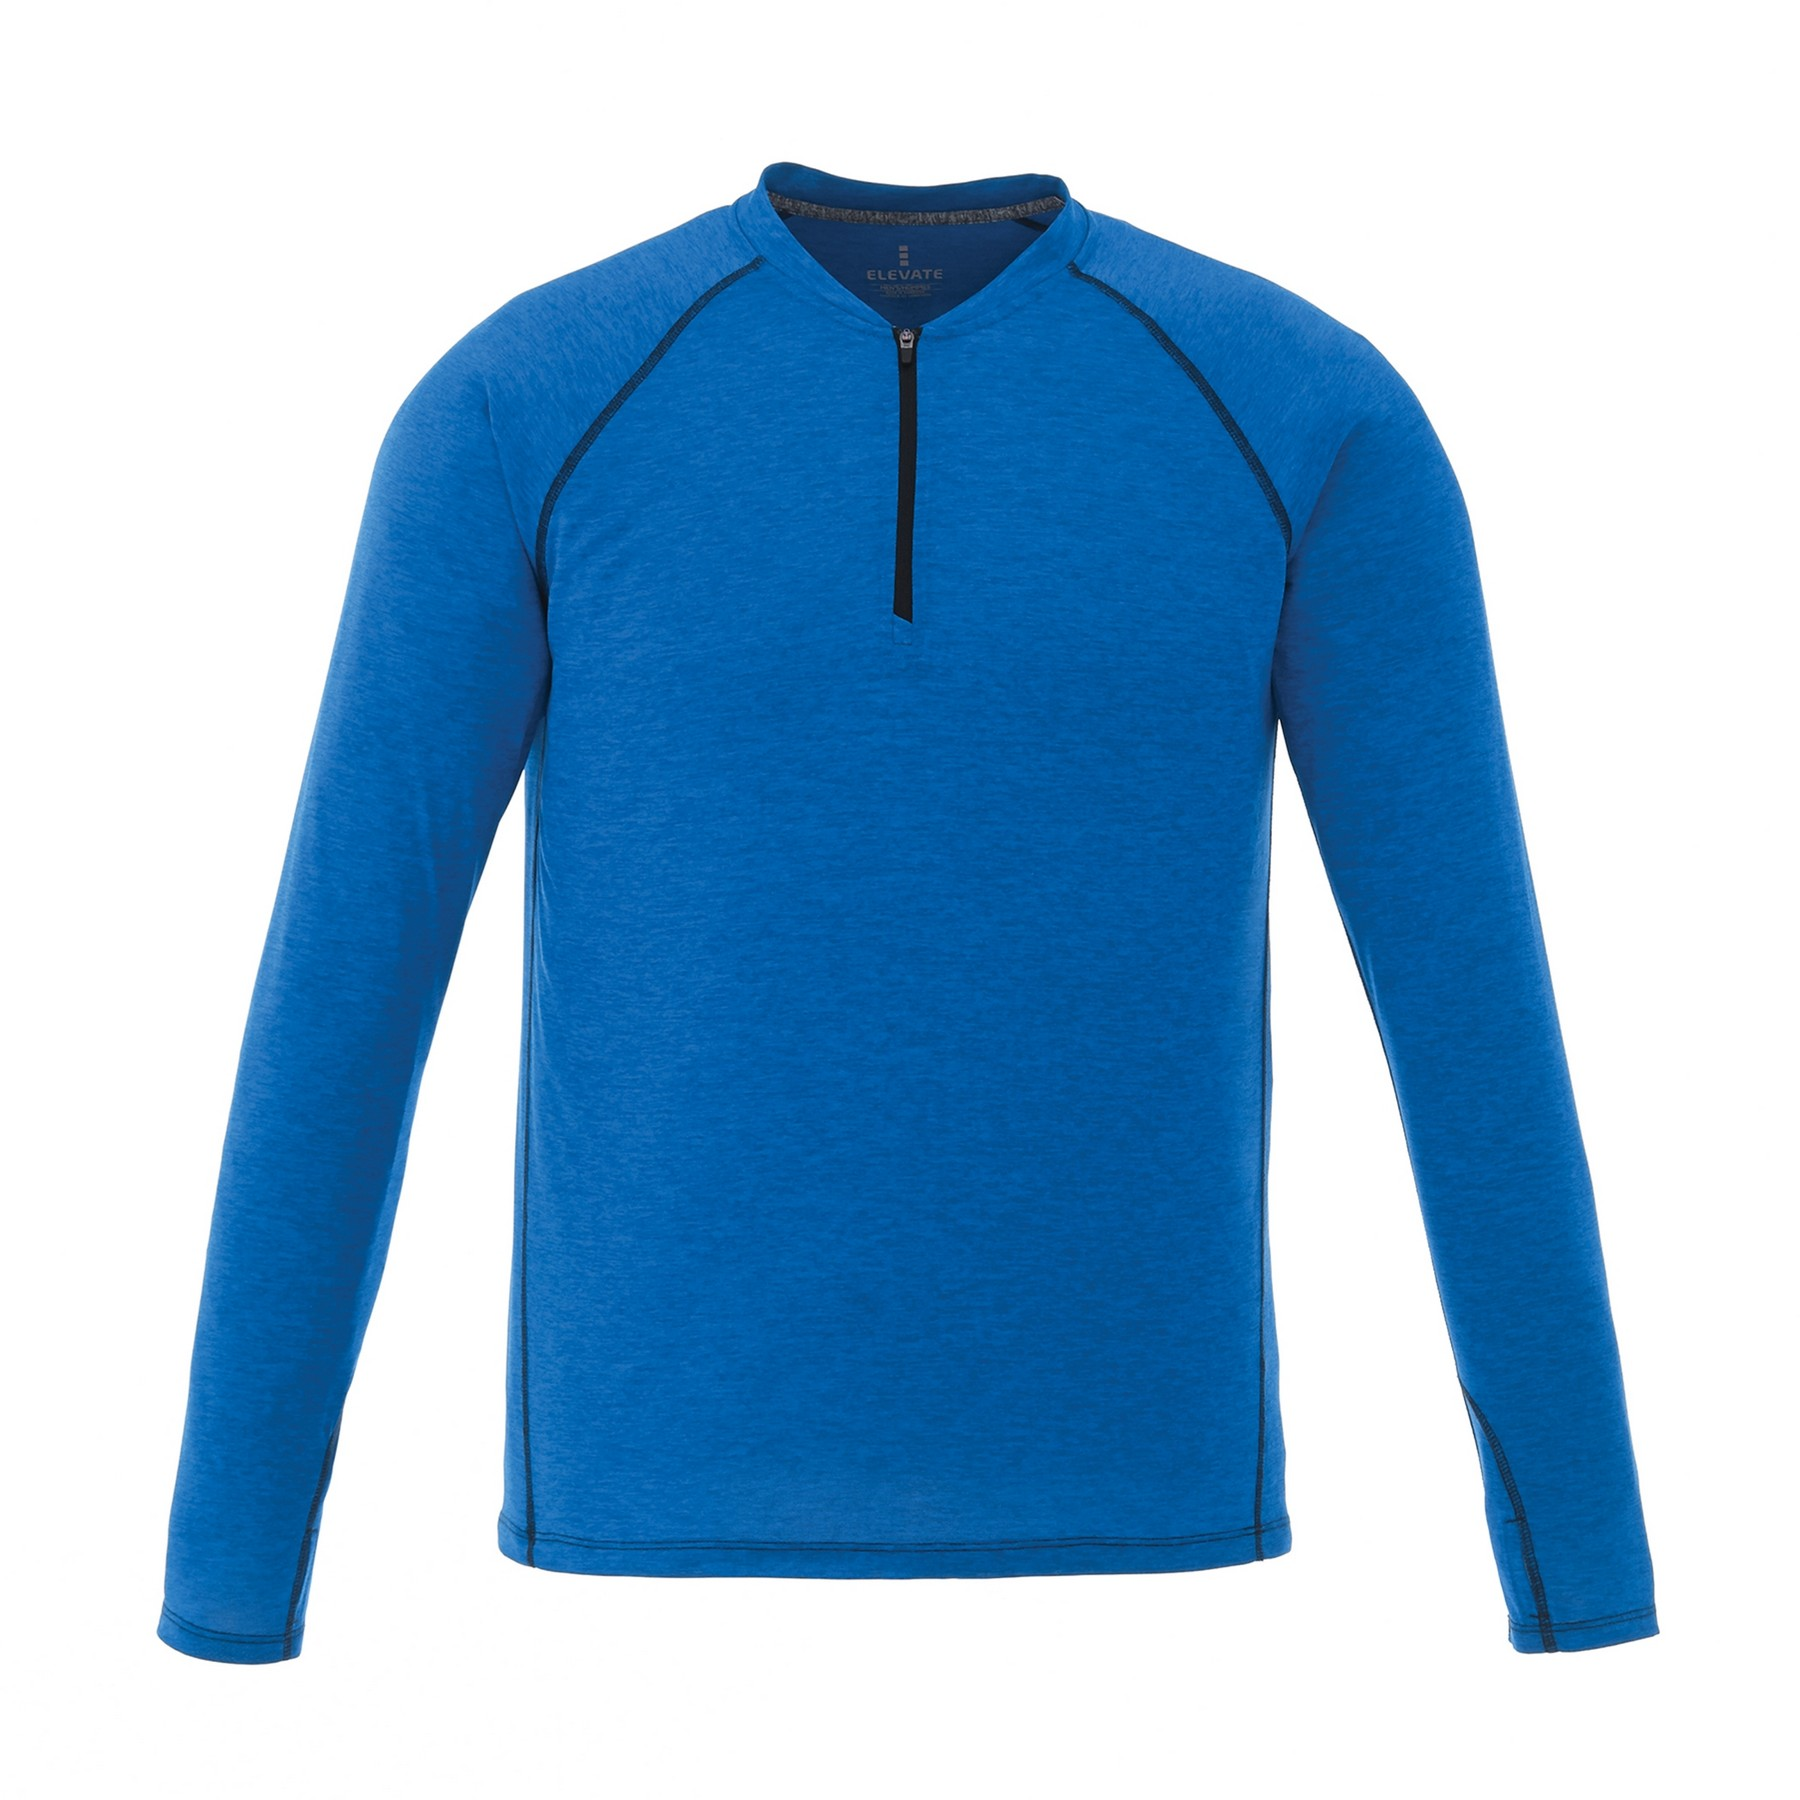 Quadra Long Sleeve Men's Knit Shirt, #17812 - Embroidered